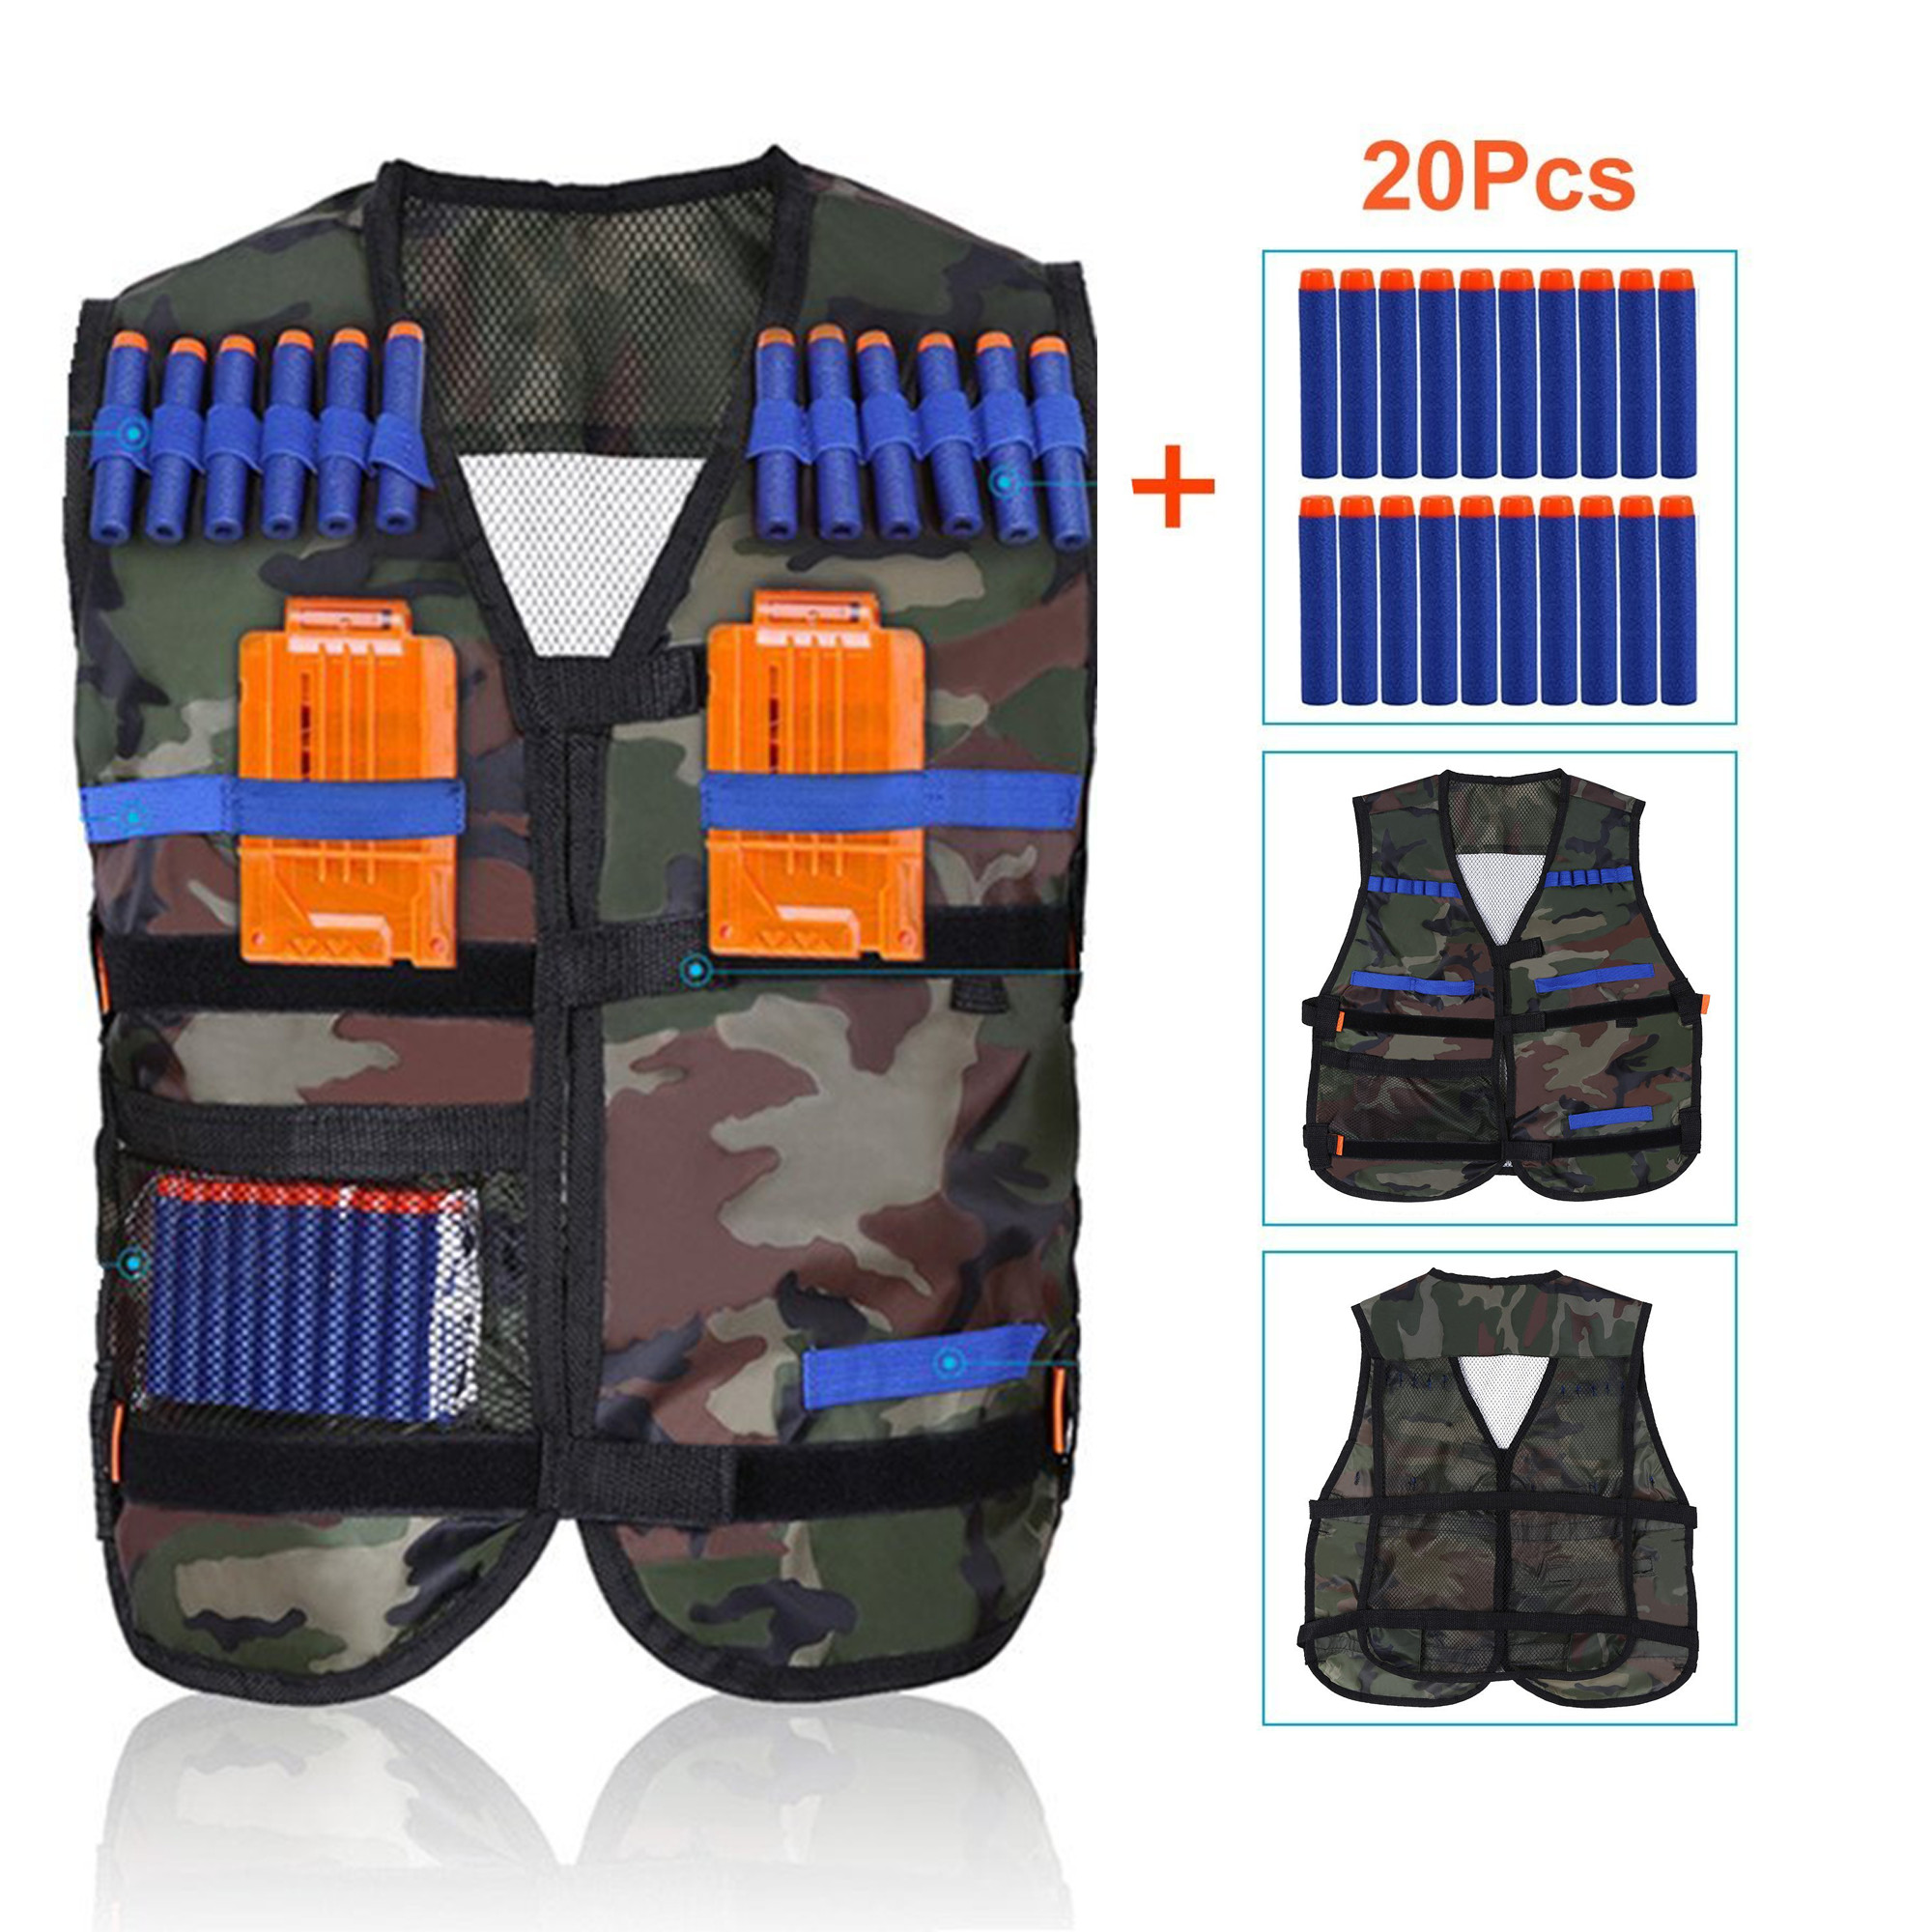 WALFRONT Kids Elite Camouflage Tactical Vest + 20 Pcs Blue Soft Foam Darts for Gun Elite Series(Not Including 2 Clips)